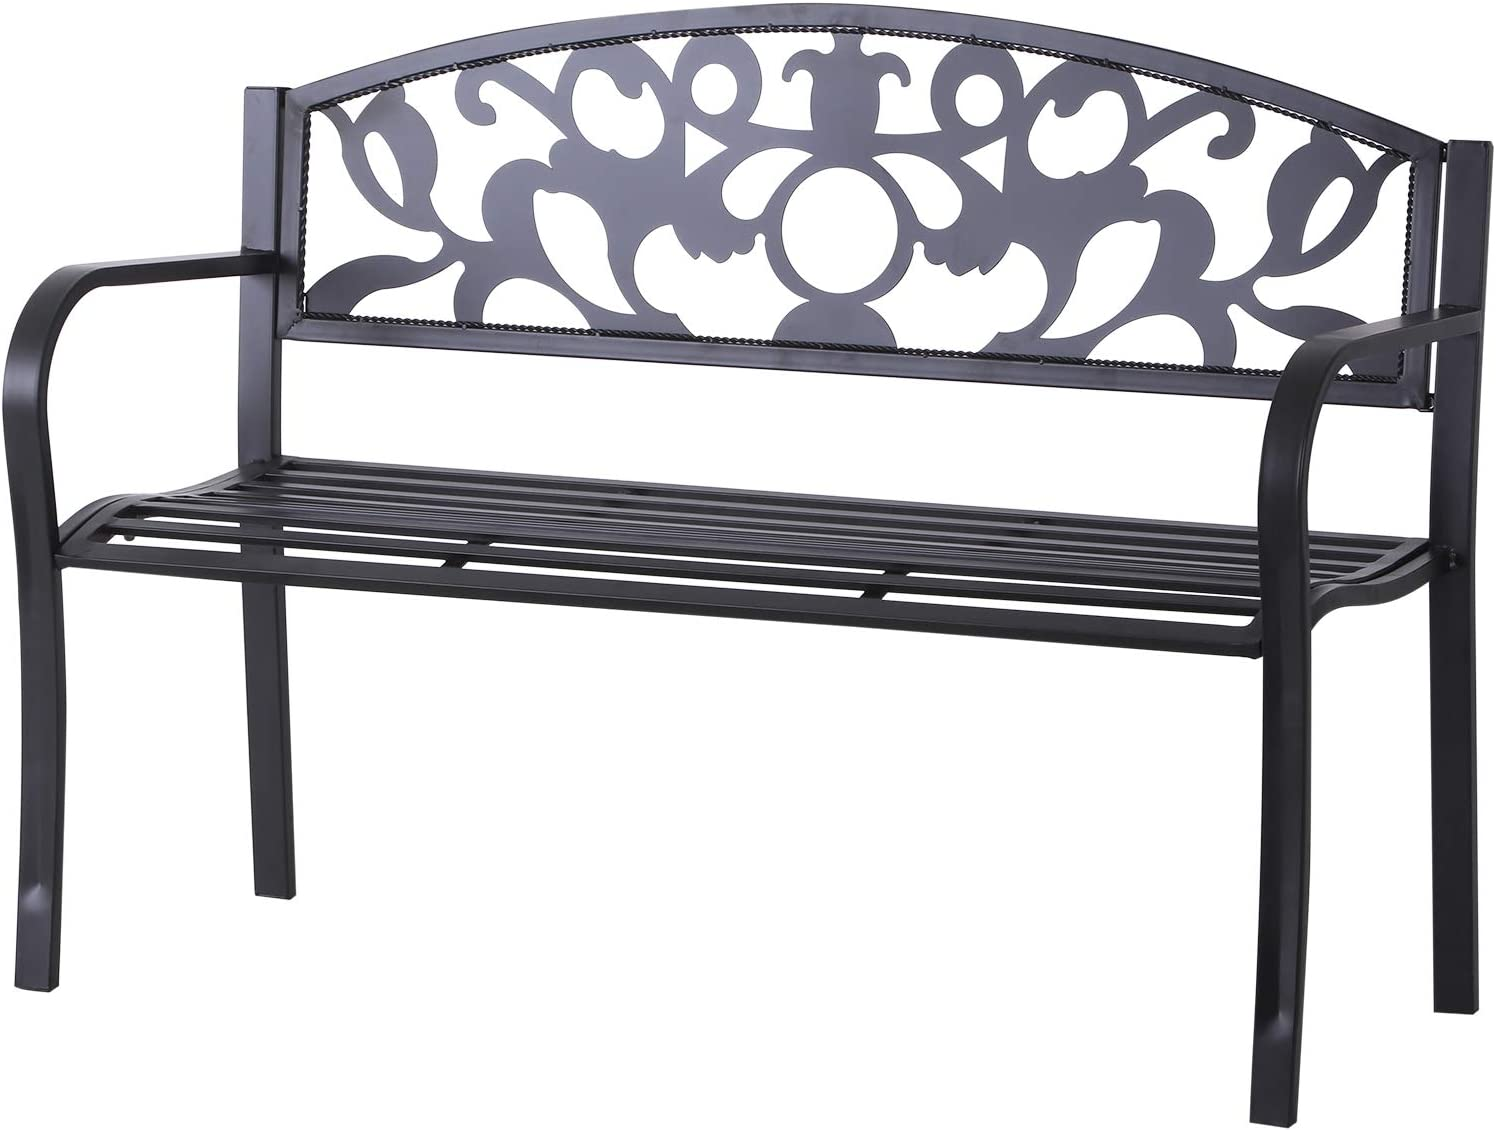 Outsunny 2 Seater Outdoor Patio Garden Metal Bench Park Yard Furniture Porch Chair Seat Black 128L x 91H x 50W cm